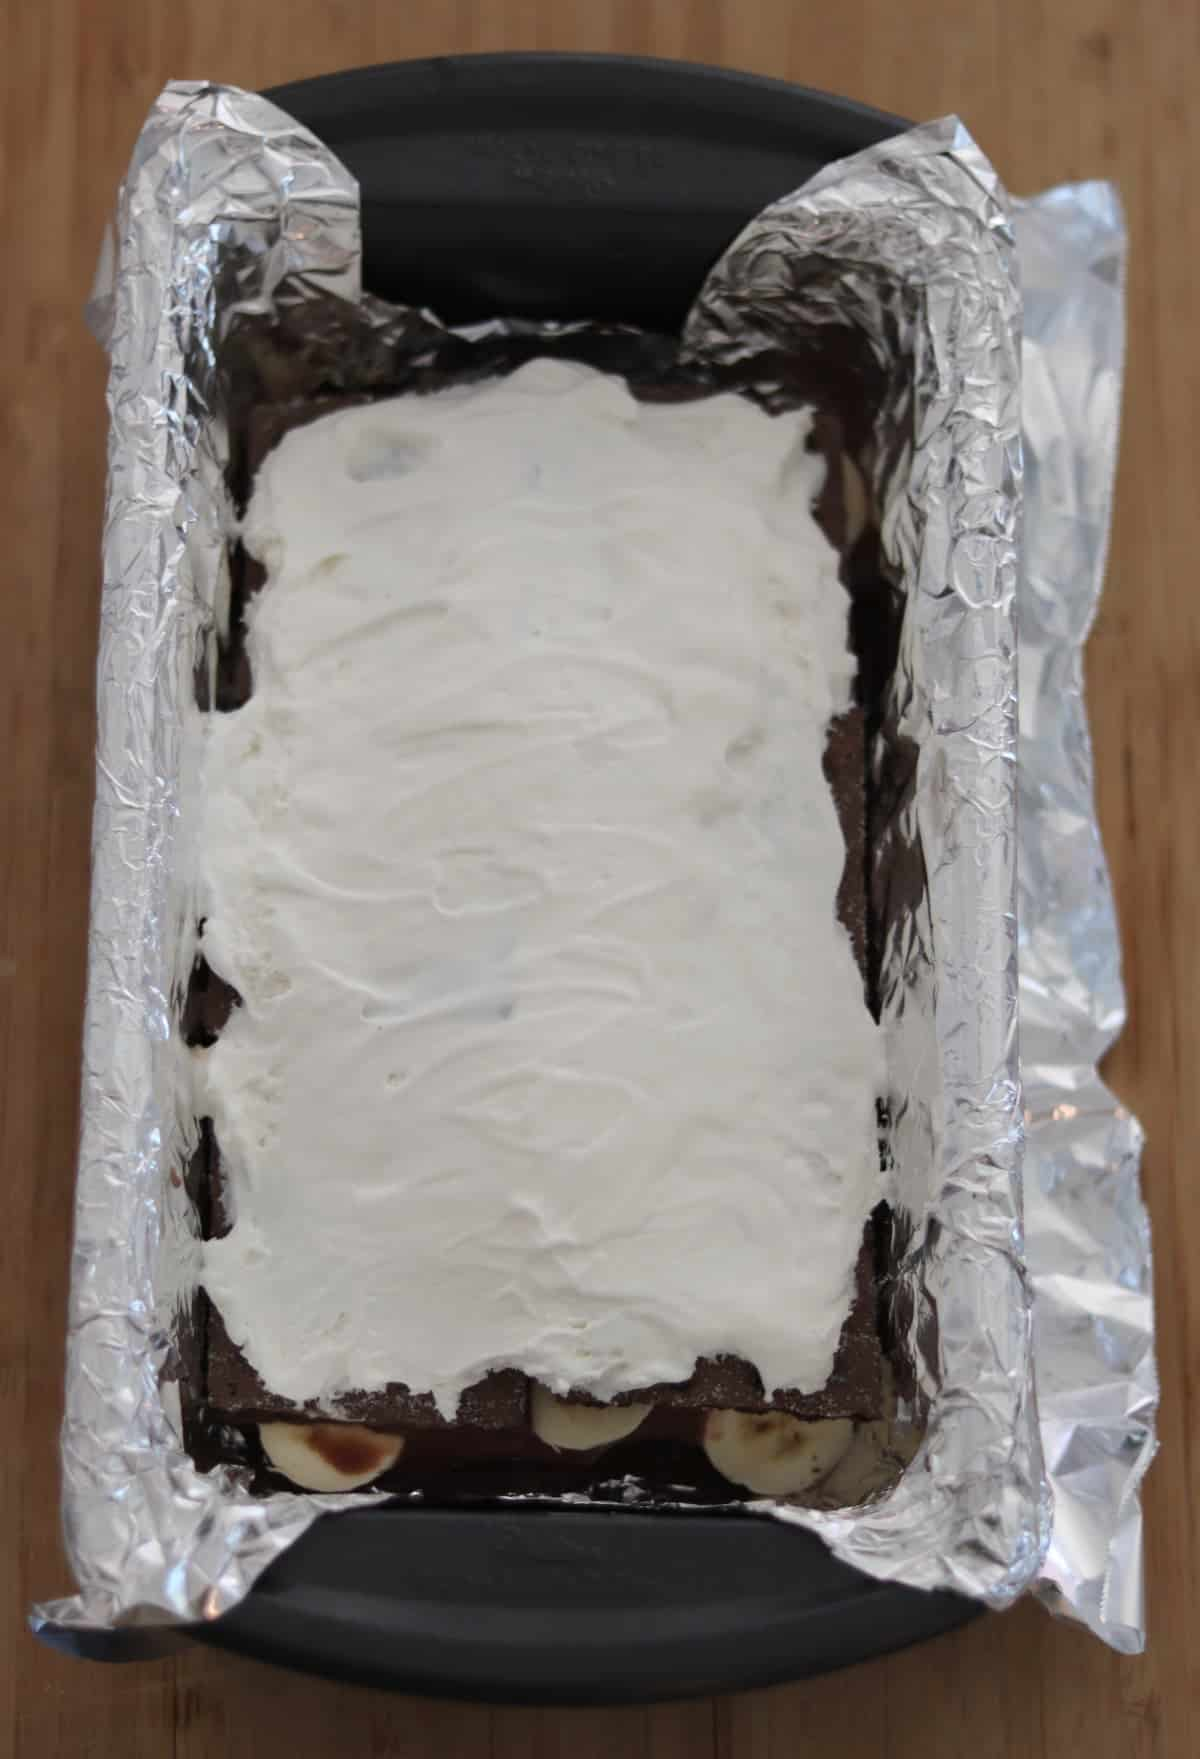 Frozen whipped topping covered chocolate fudge ice box cake in foil-lined loaf pan.